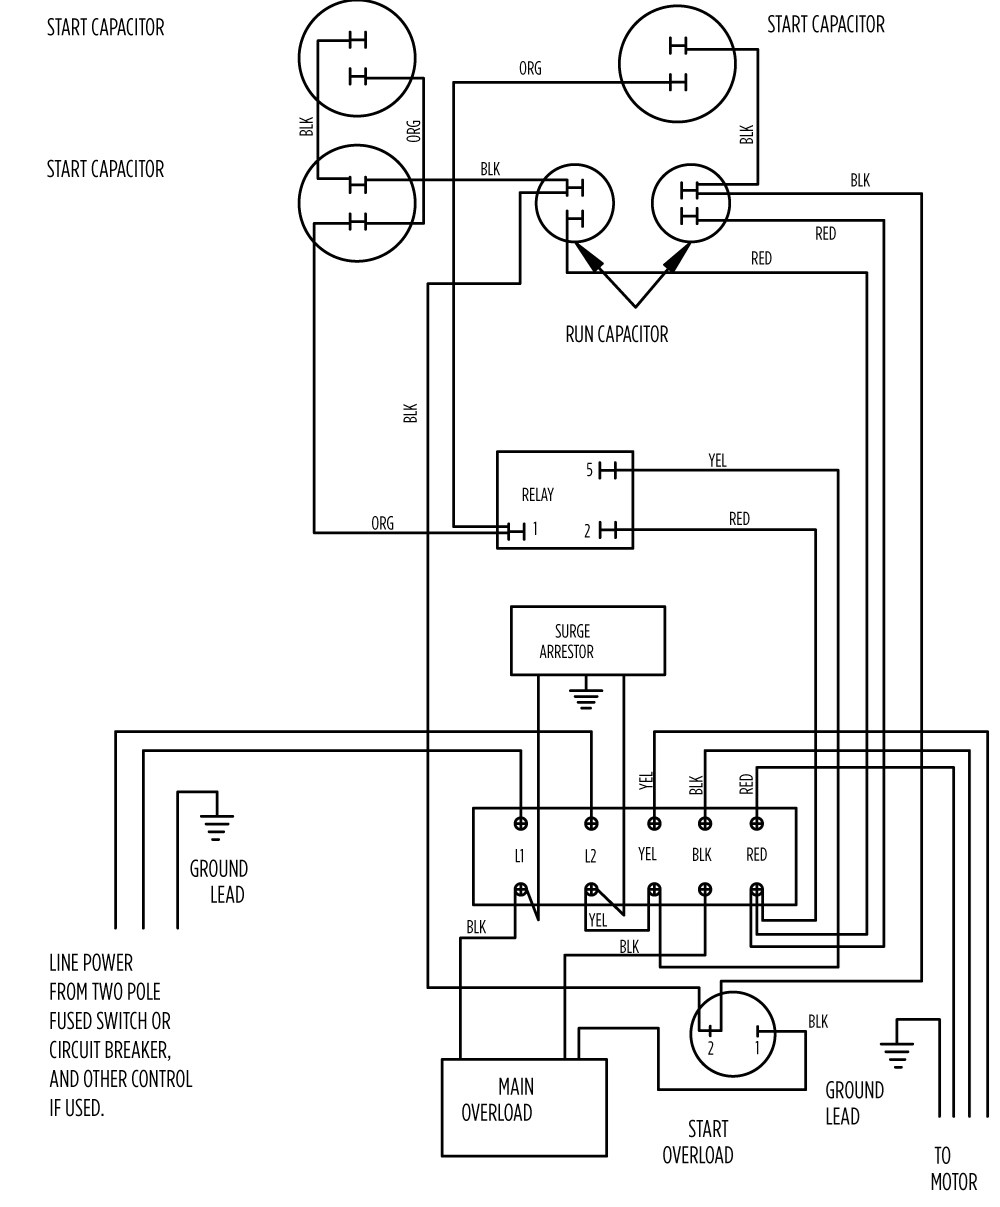 10 hp standard 282 202 9210 or 282 202 9230_aim gallery?format=jpg&quality=80 aim manual page 57 single phase motors and controls motor baldor motors wiring diagram at readyjetset.co